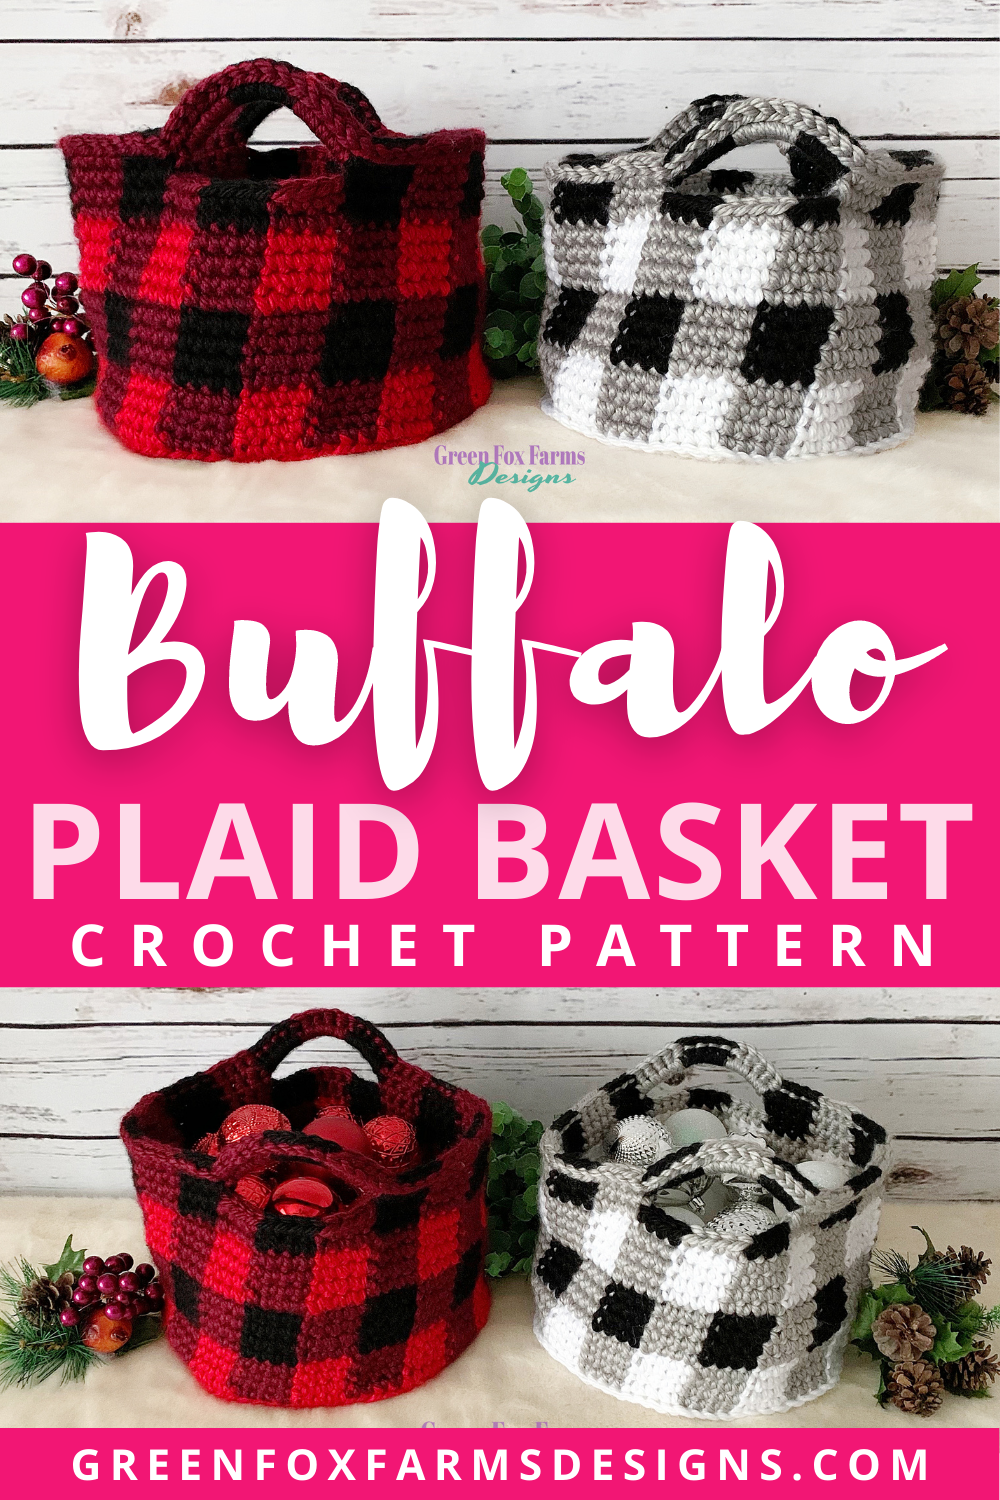 Gorgeous Red and Black Buffalo Plaid Basket Crochet Pattern. Black and White Buffalo Plaid Basket brings Farmhouse Chic to your holiday home decor. Crochet Pattern by greenfoxfarmsdesigns.com